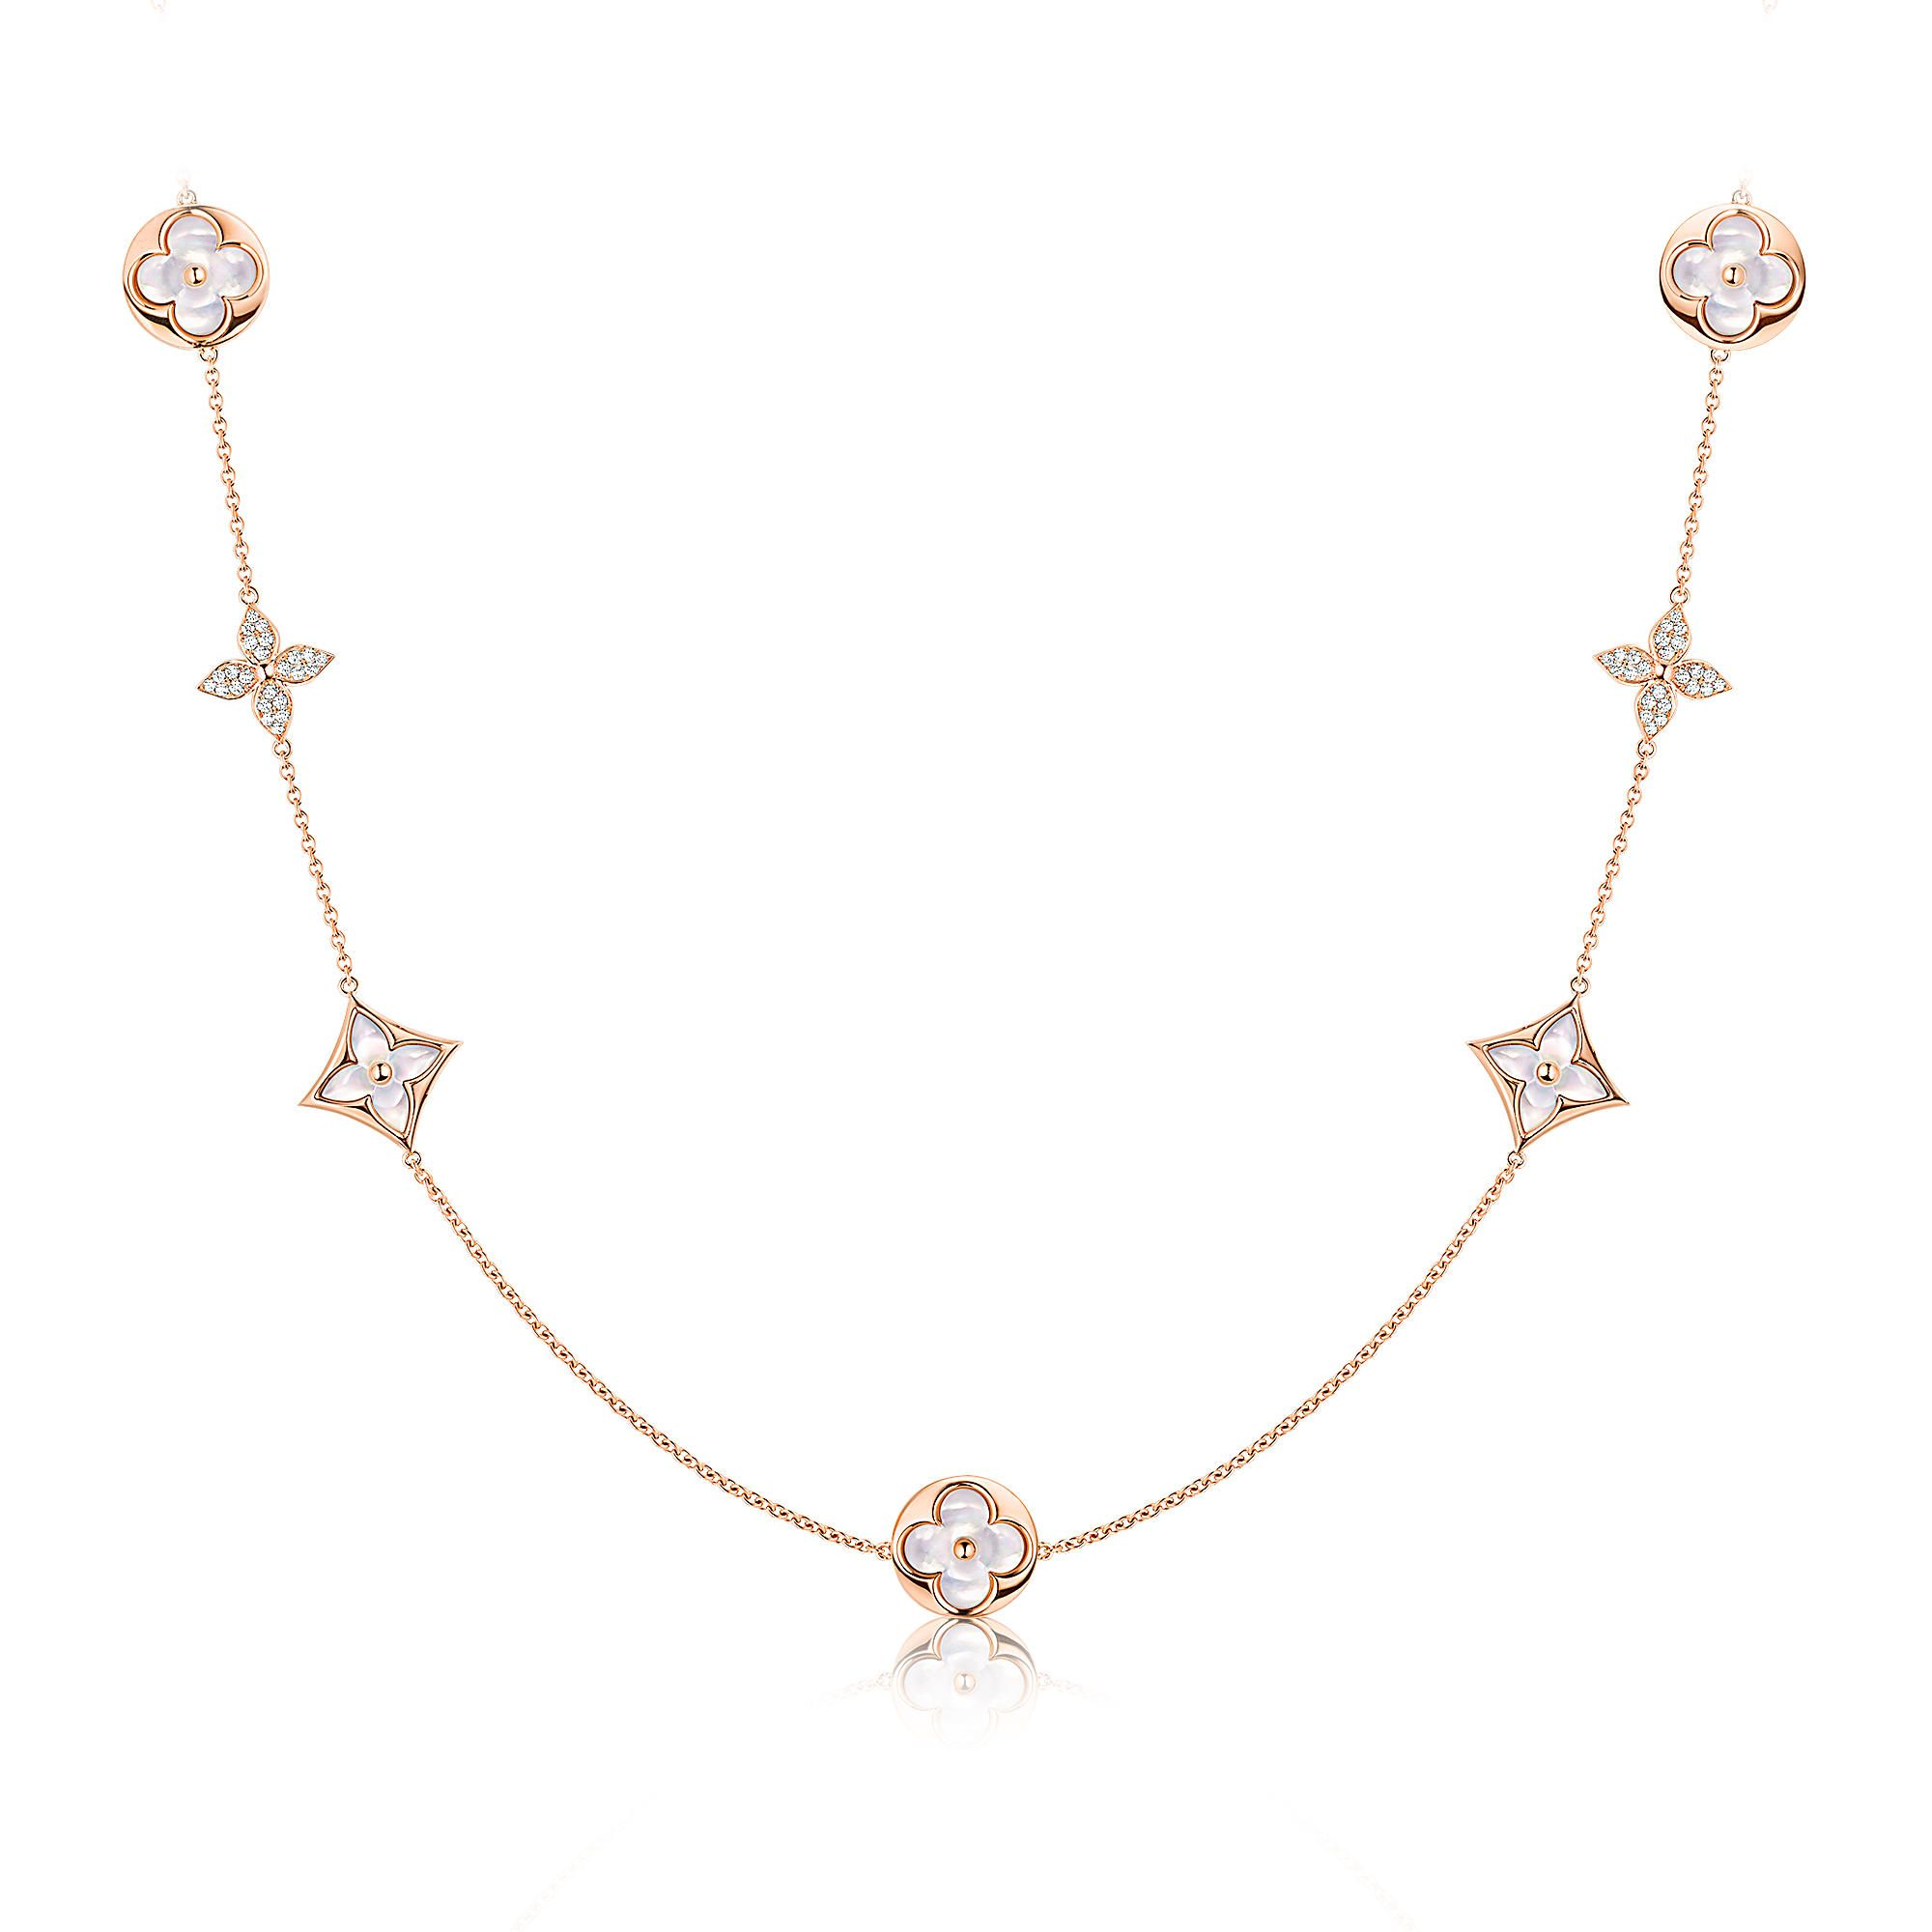 Key:product_page_share_discover_product Monogram Sautoir, Pink Gold,  Diamonds And White Motherof